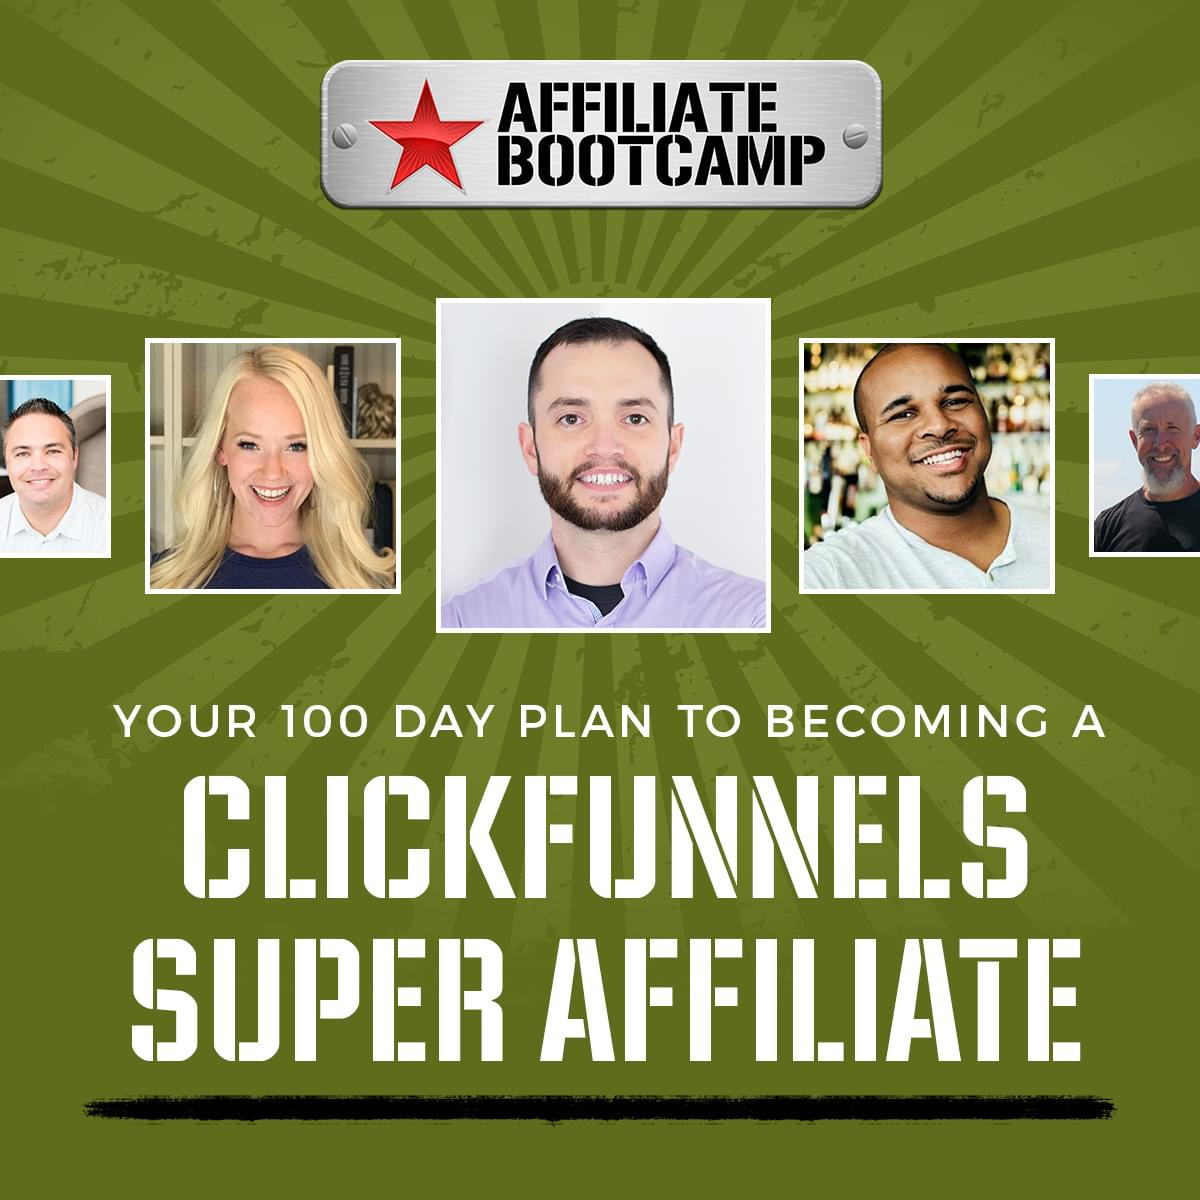 Clickfunnels-affiliate-program-Review-Graphic-Free-Summit-groovy-marketing.jpg